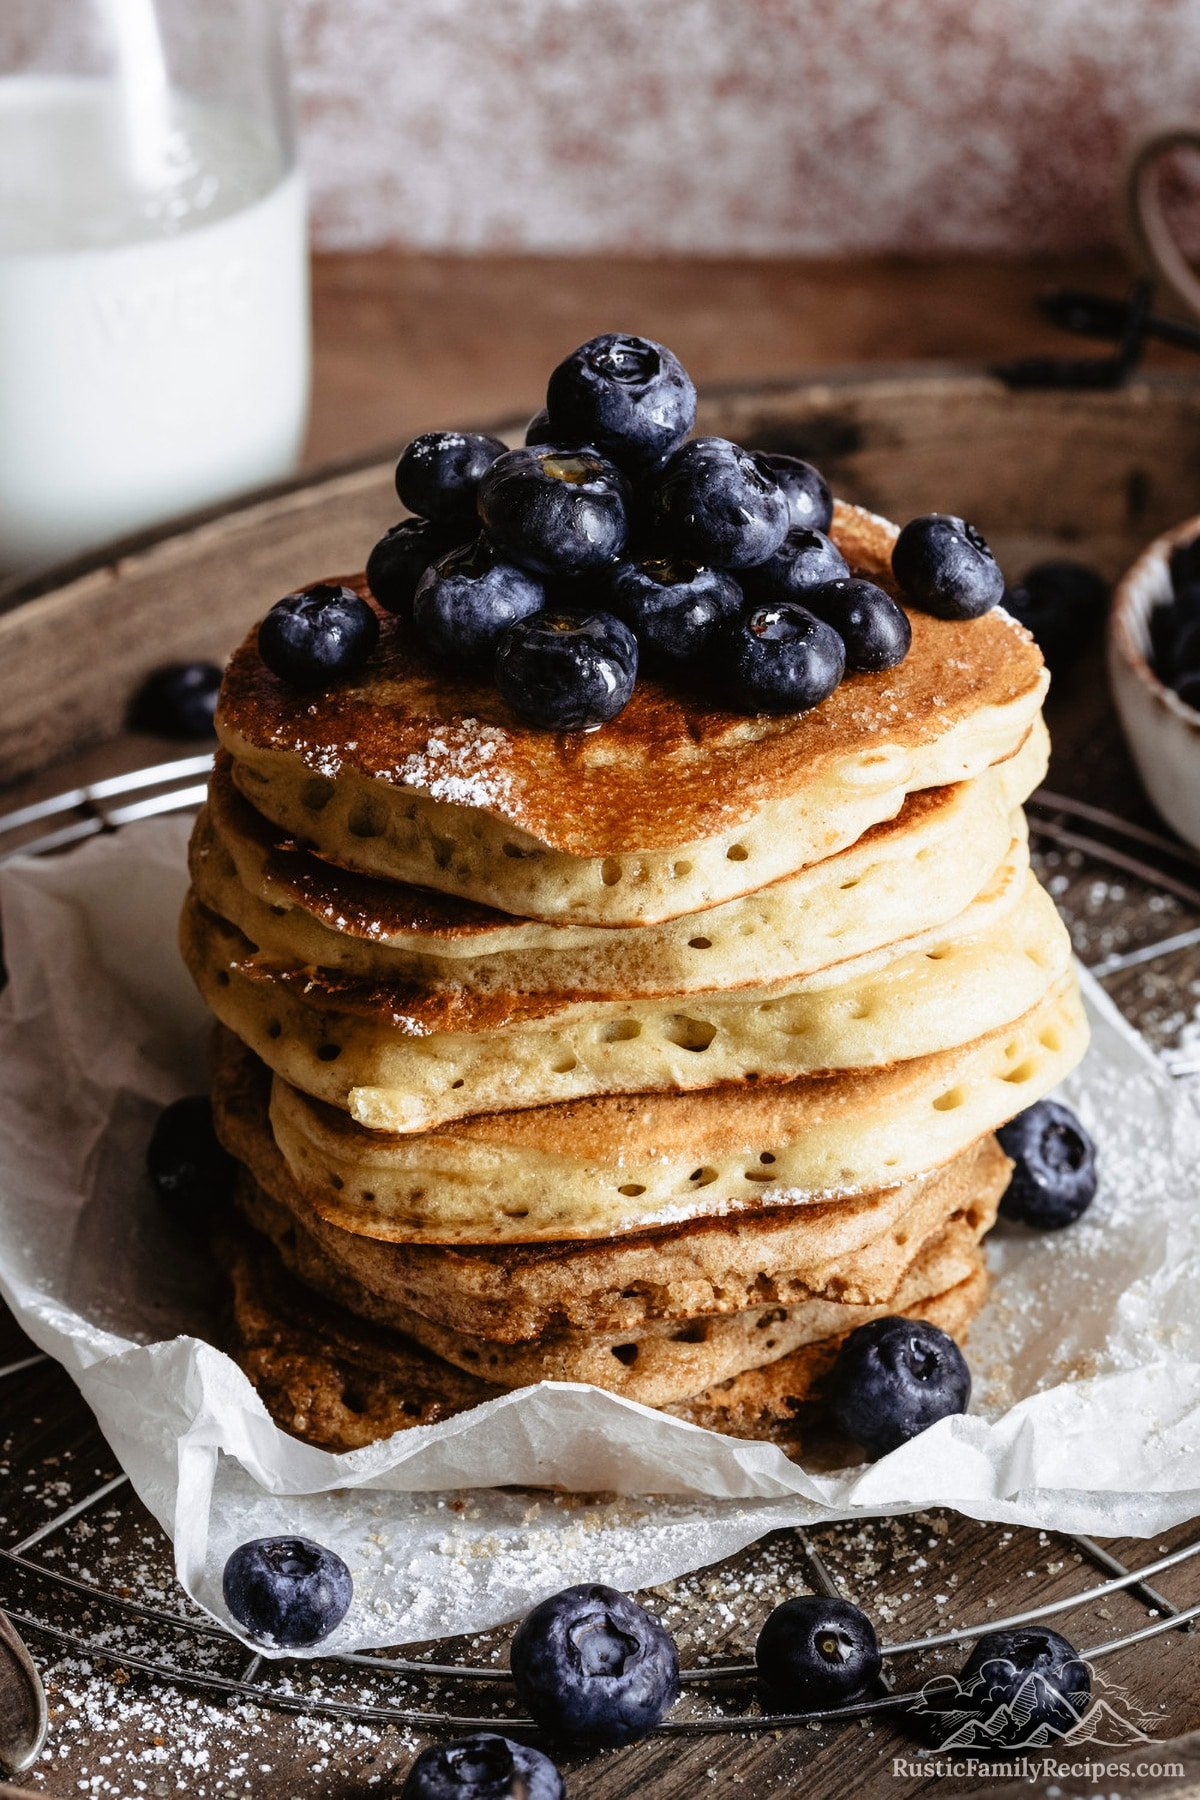 A stack of fluffy sourdough pancakes topped with blueberries.